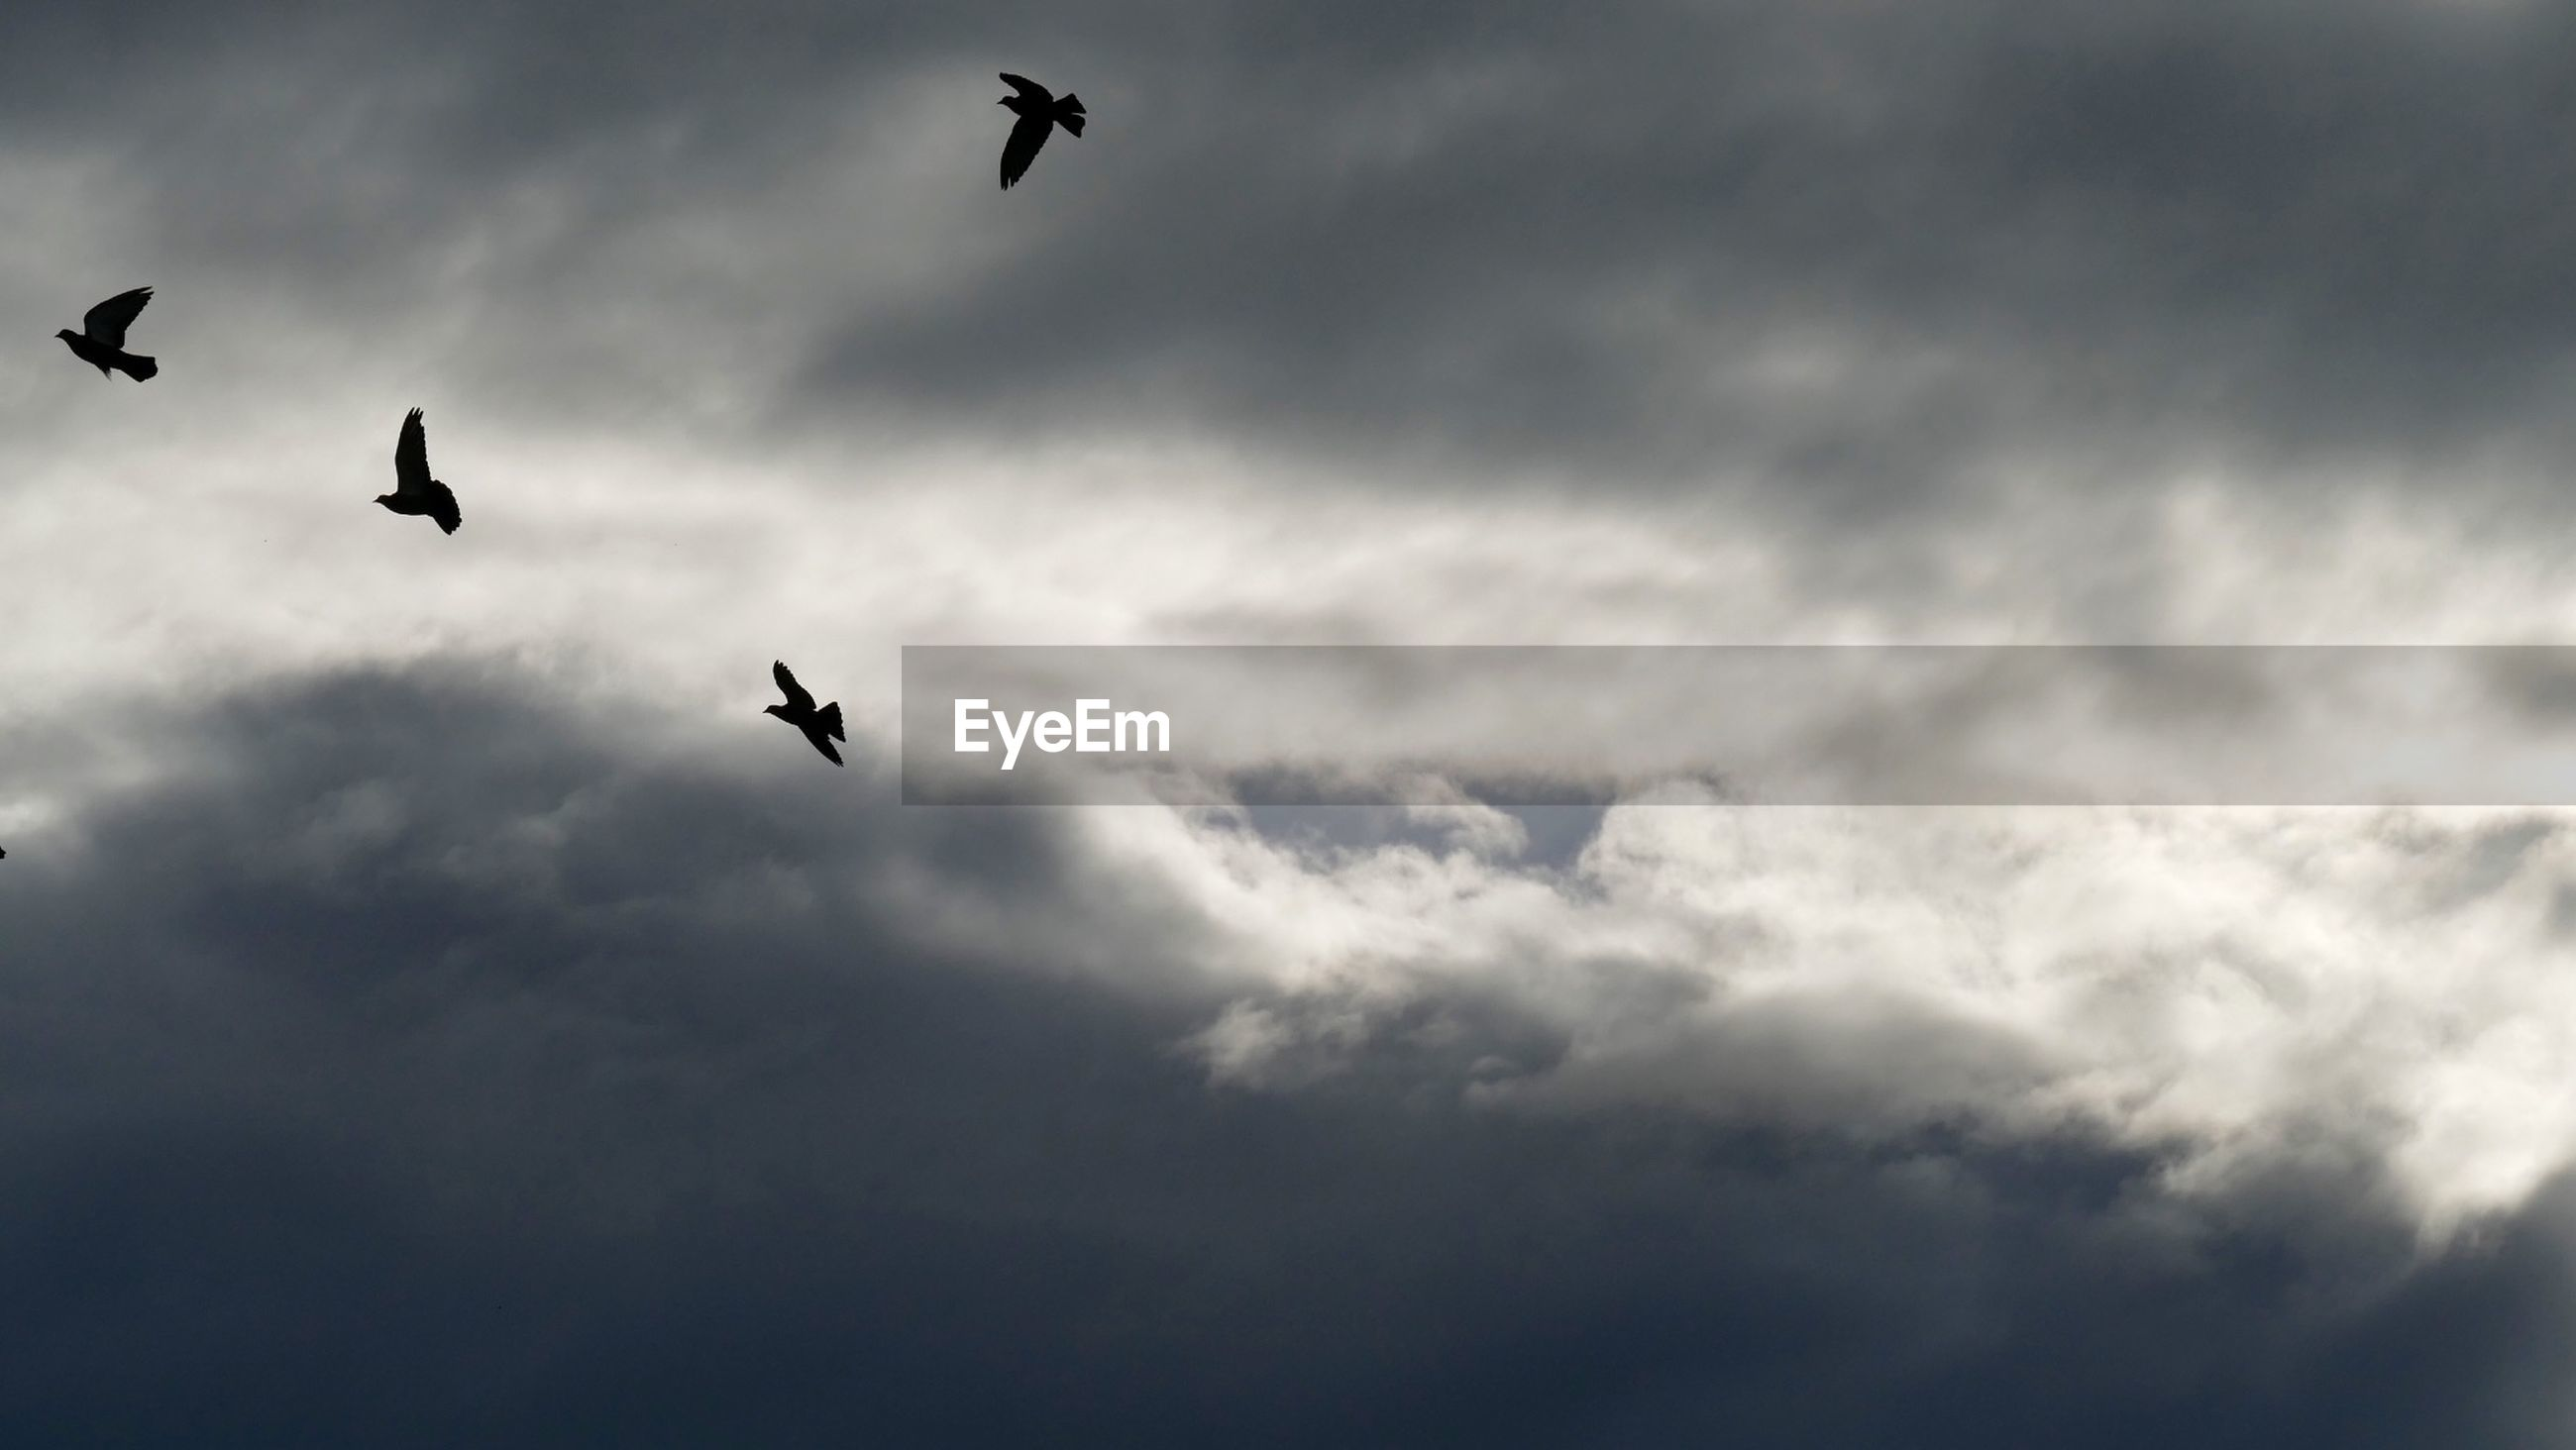 Silhouette birds flying against cloudy sky